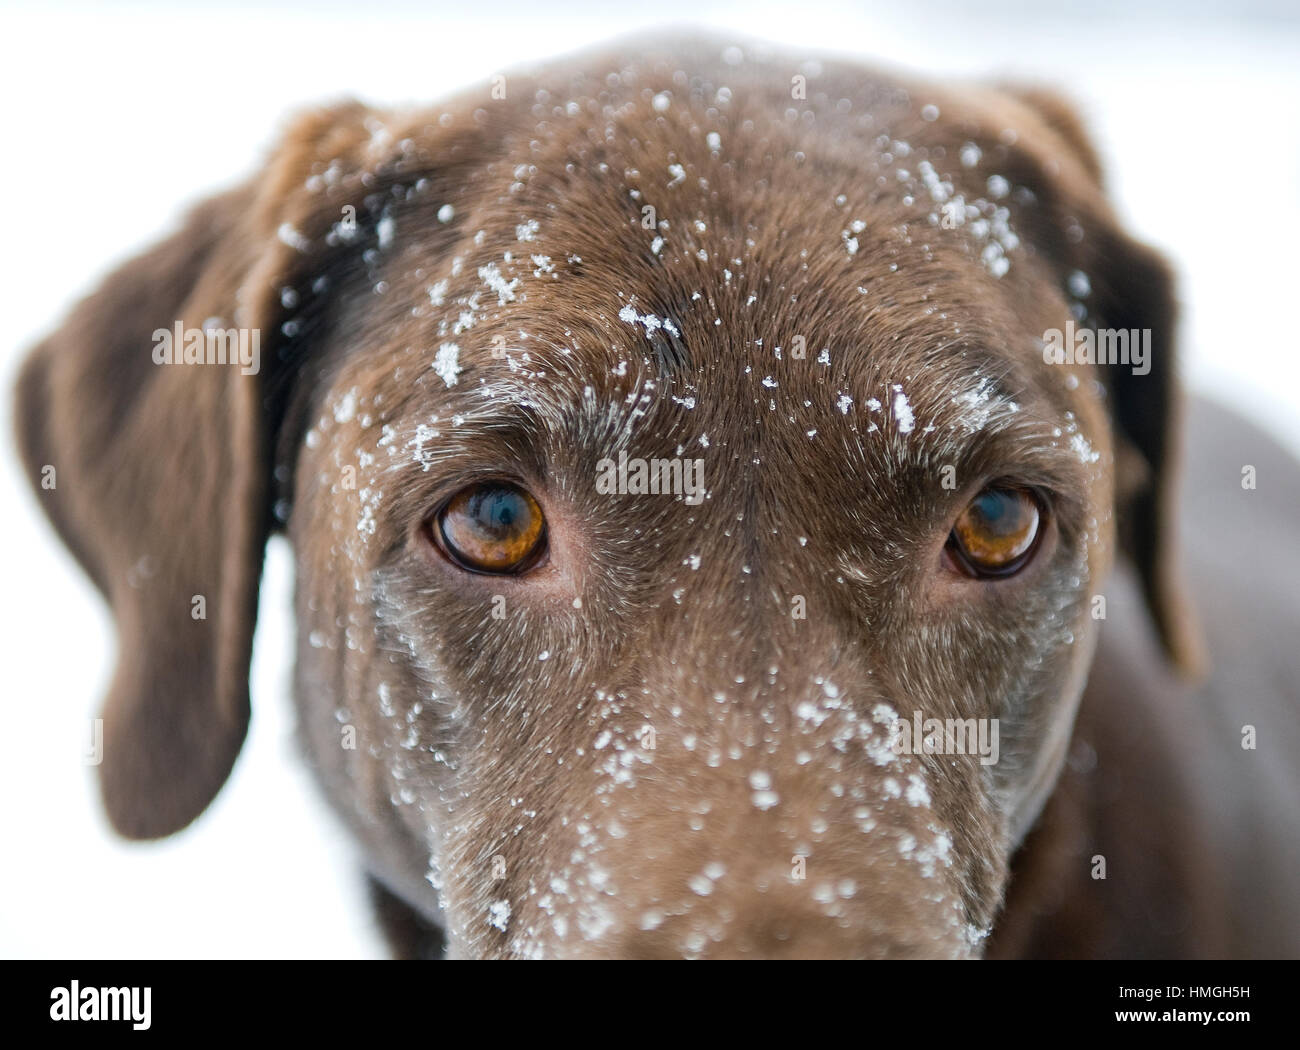 Beautiful Chocolate Lab Dog Close Up Of Intense Eyes With Snowy Face